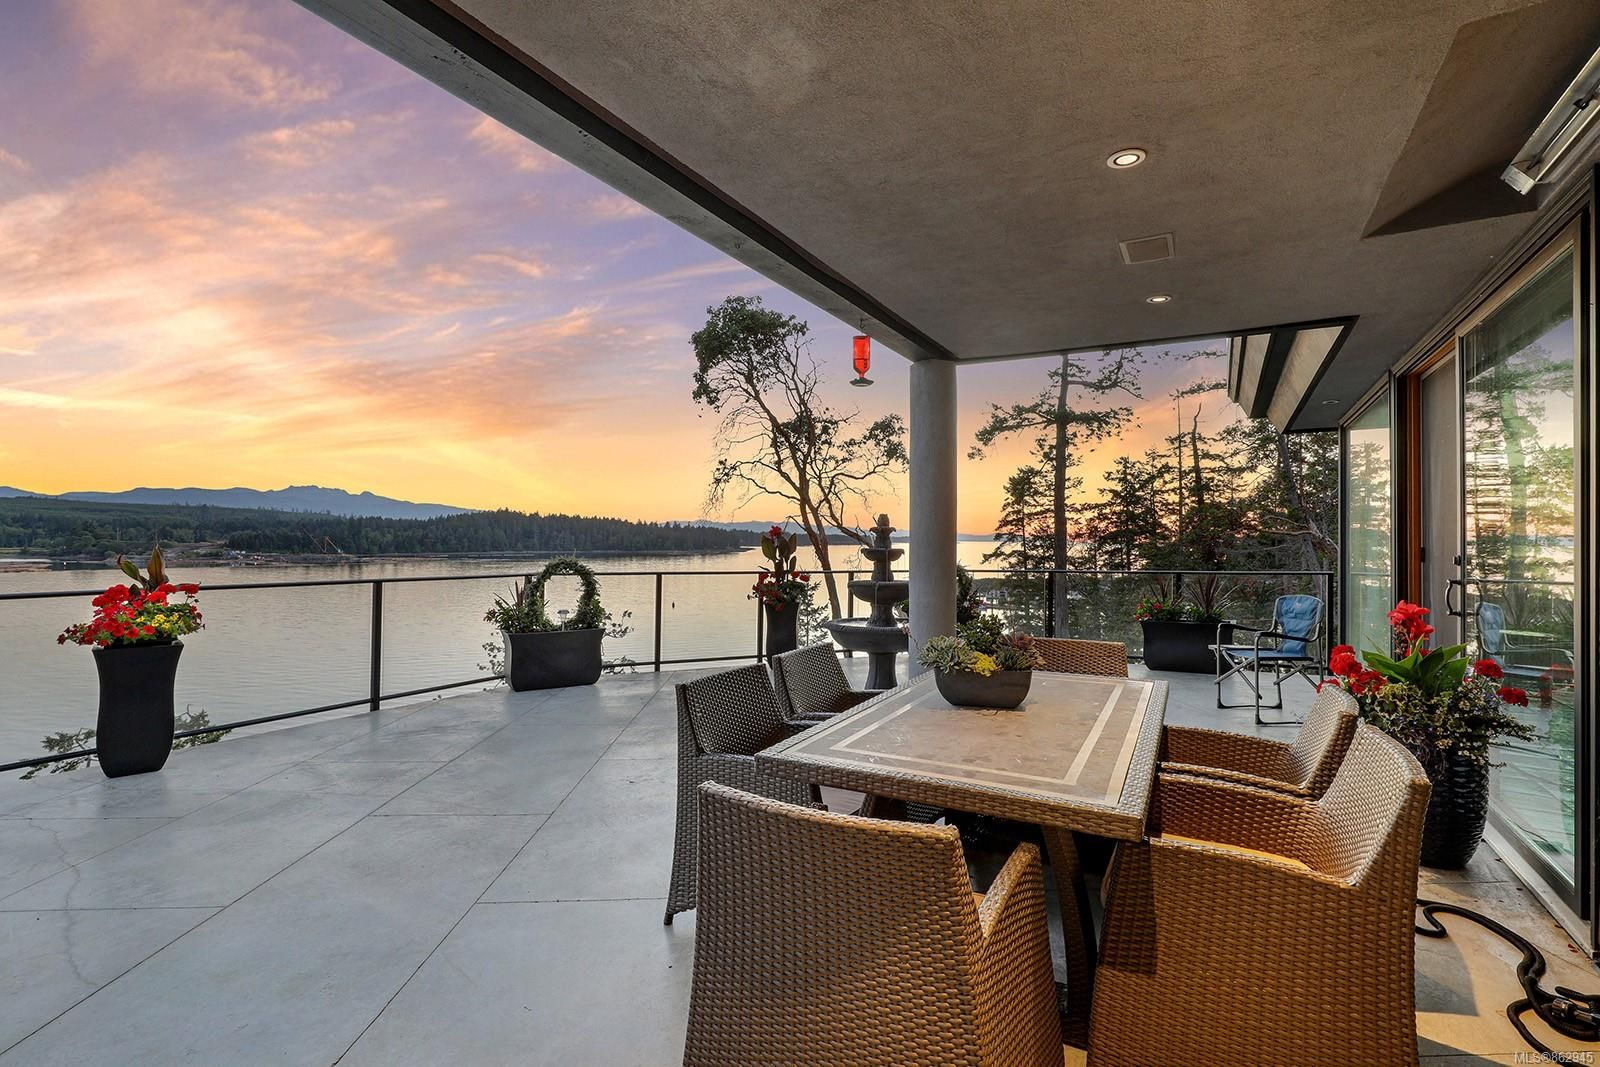 Photo 58: Photos: 1675 Claudet Rd in : PQ Nanoose House for sale (Parksville/Qualicum)  : MLS®# 862945